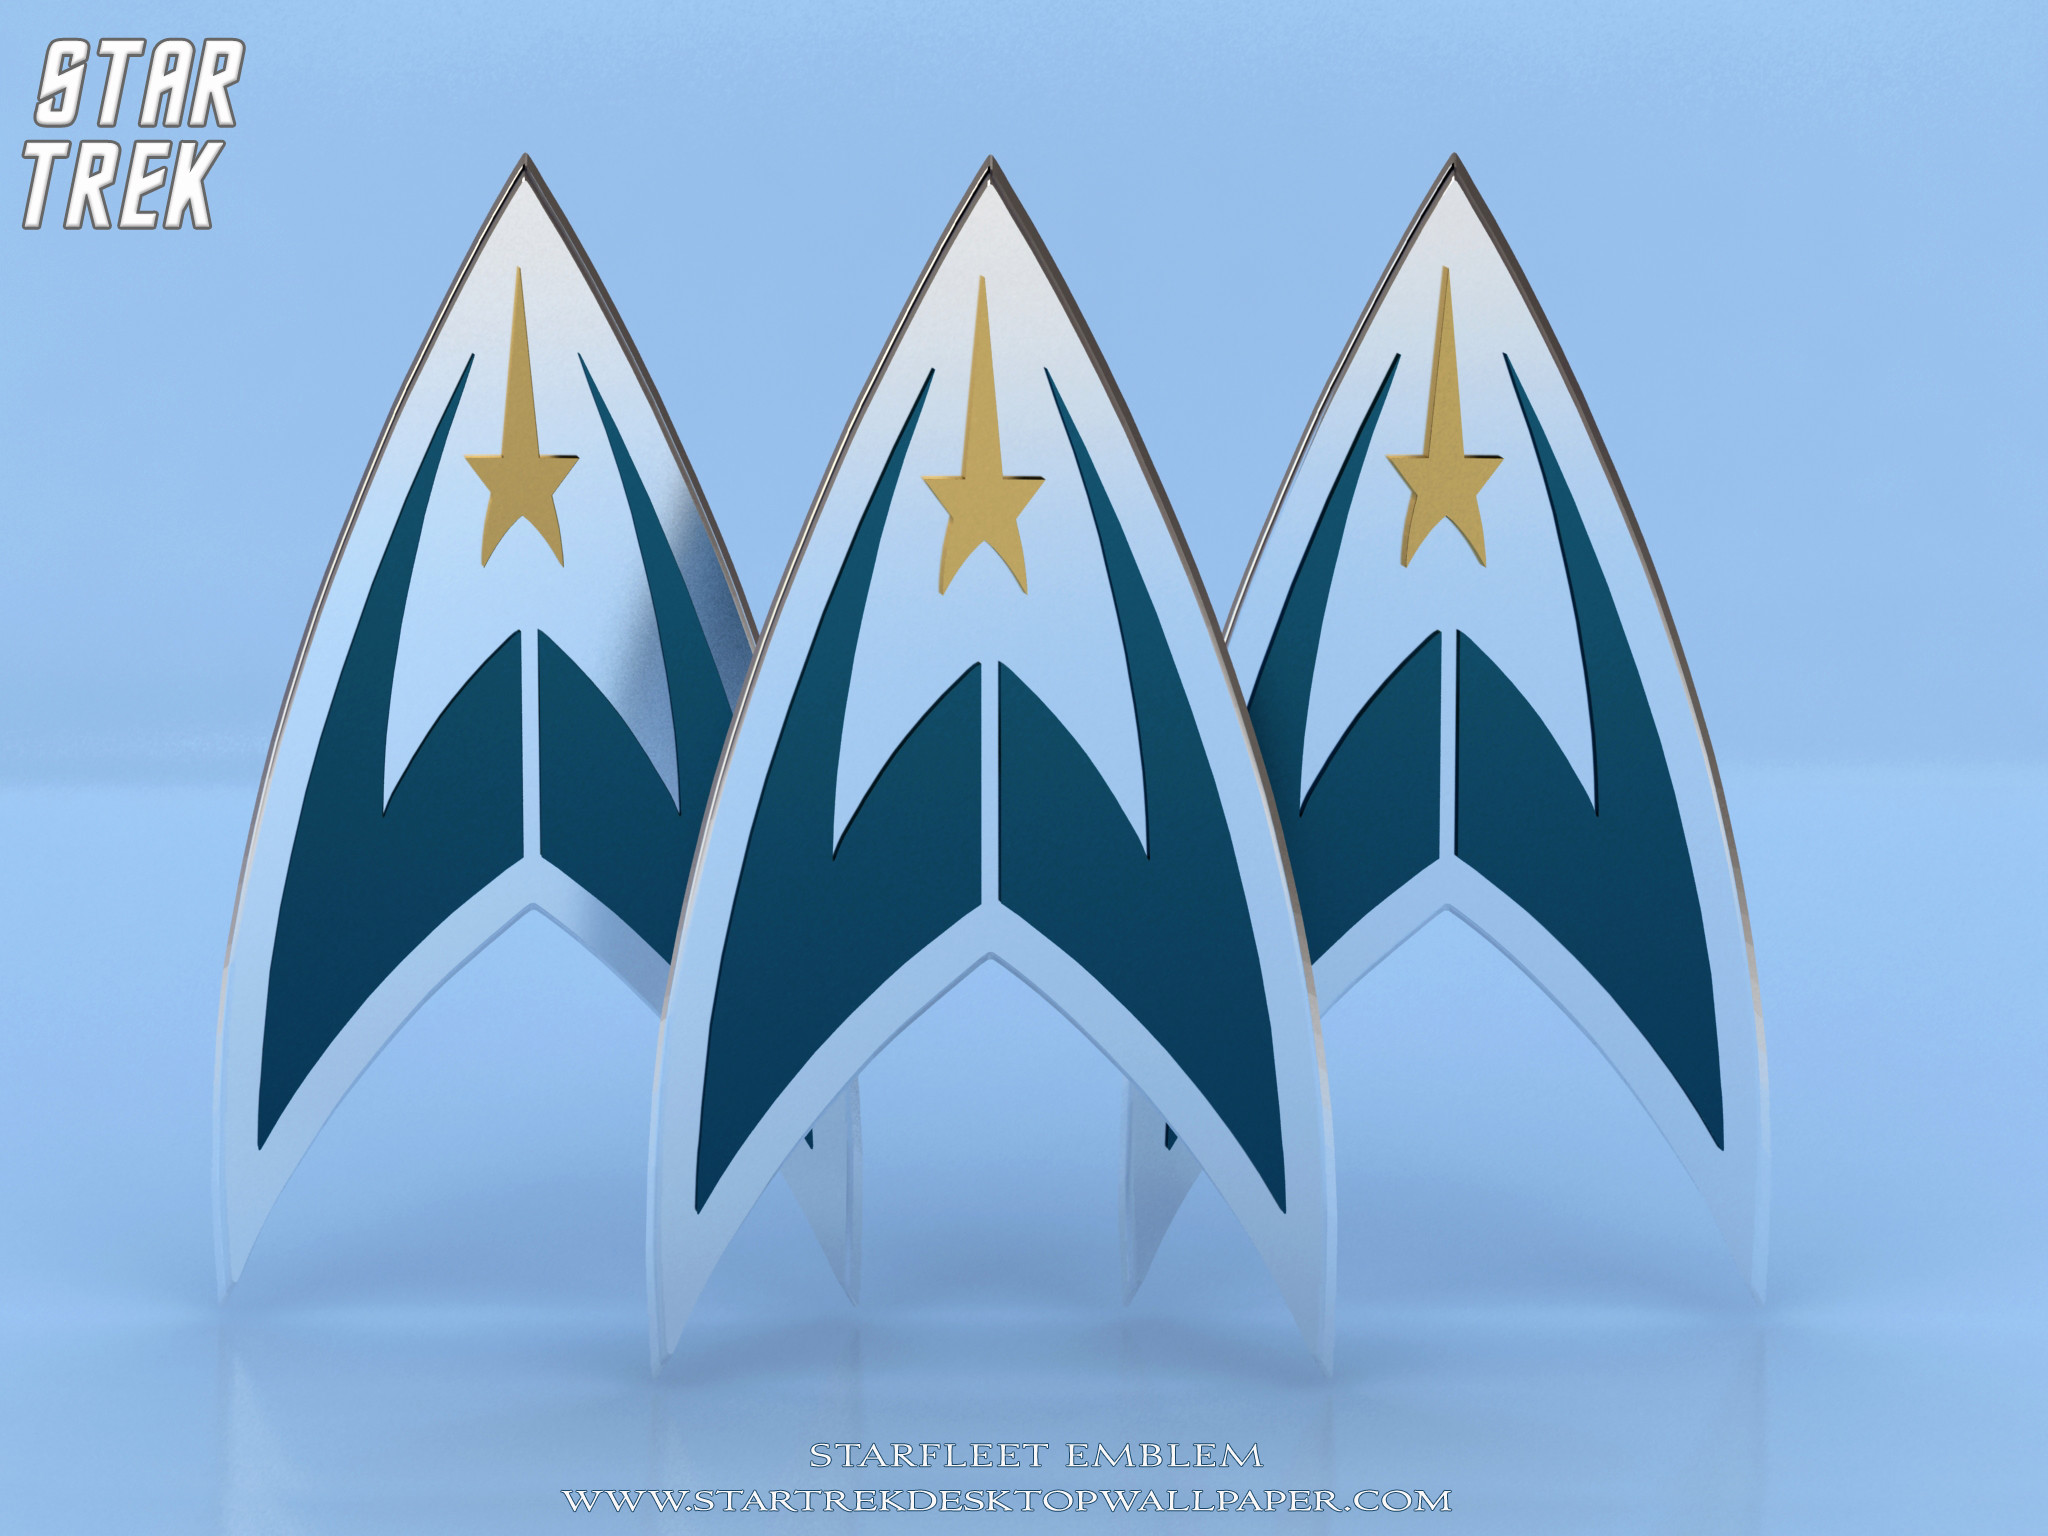 Res: 2048x1536, Star Trek Starfleet Emblem. Free Star Trek computer desktop wallpaper,  images, pictures download